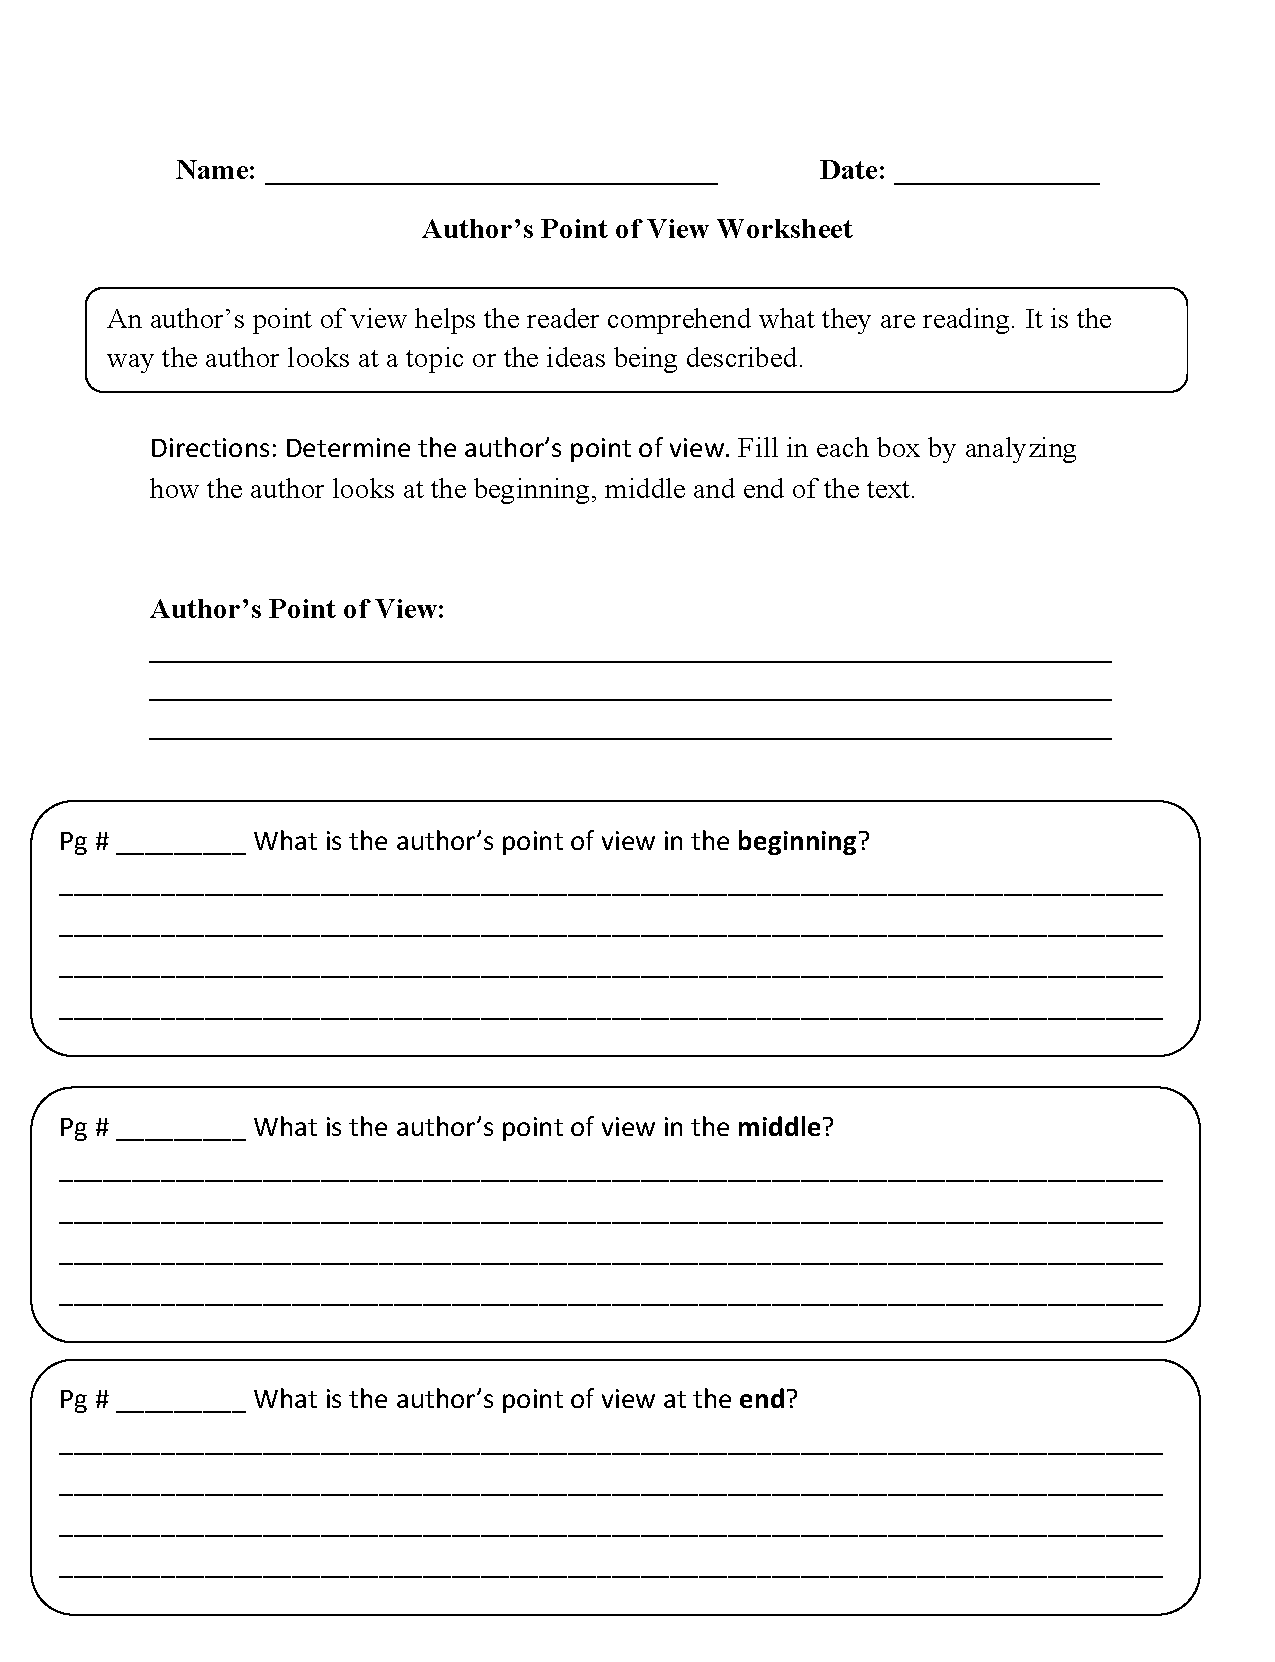 Weirdmailus  Prepossessing Englishlinxcom  Point Of View Worksheets With Extraordinary Point Of View Worksheets With Endearing Free Consonant Blend Worksheets Printables Also Present Progressive Worksheets Esl In Addition Story Starters Worksheets And Math Worksheets Multiplication Word Problems As Well As Maths Worksheets Decimals Additionally Noun Determiners Worksheet From Englishlinxcom With Weirdmailus  Extraordinary Englishlinxcom  Point Of View Worksheets With Endearing Point Of View Worksheets And Prepossessing Free Consonant Blend Worksheets Printables Also Present Progressive Worksheets Esl In Addition Story Starters Worksheets From Englishlinxcom